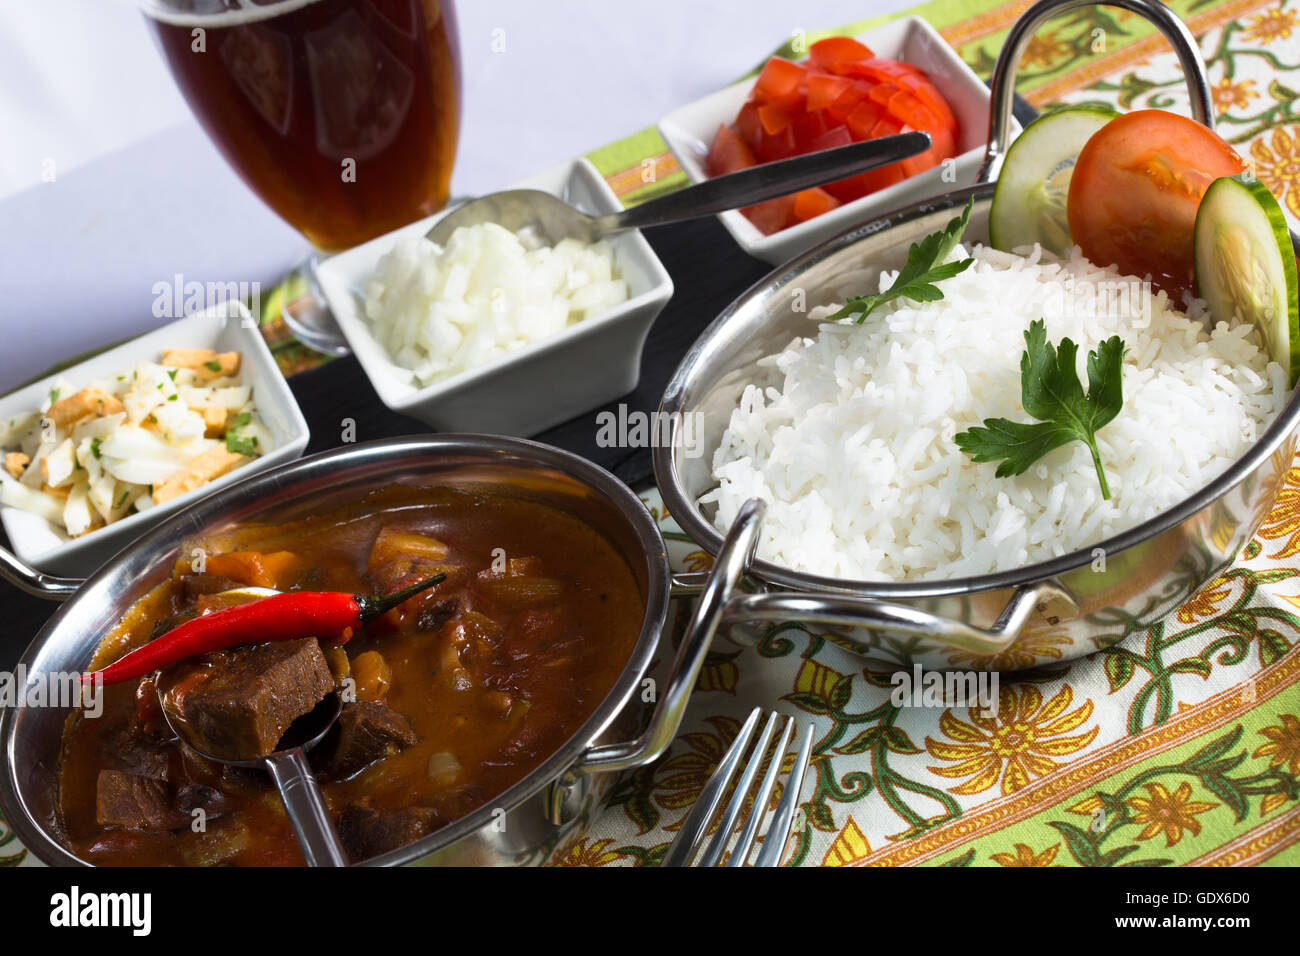 A Malaysian Indonesian Meal Of Beef Rendang Curry Rendang Daging Served With Steamed Rice And Condiments